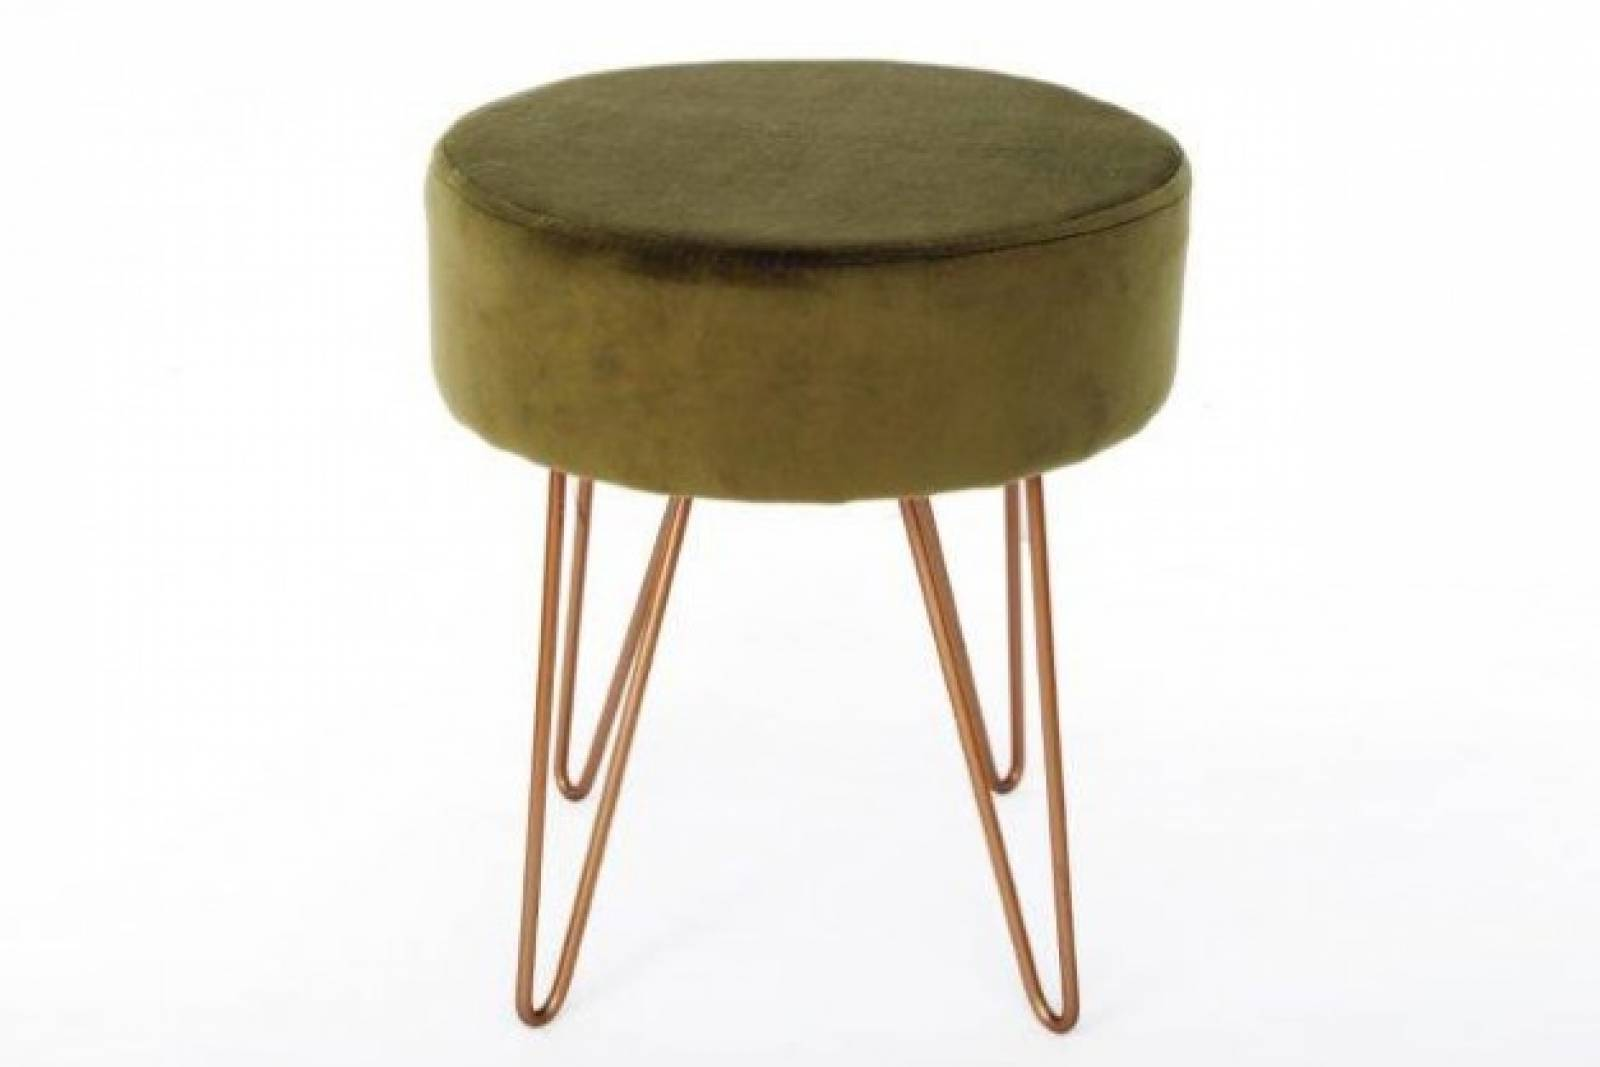 Green Velvet Circular Stool With Gold Hairpin Legs thumbnails